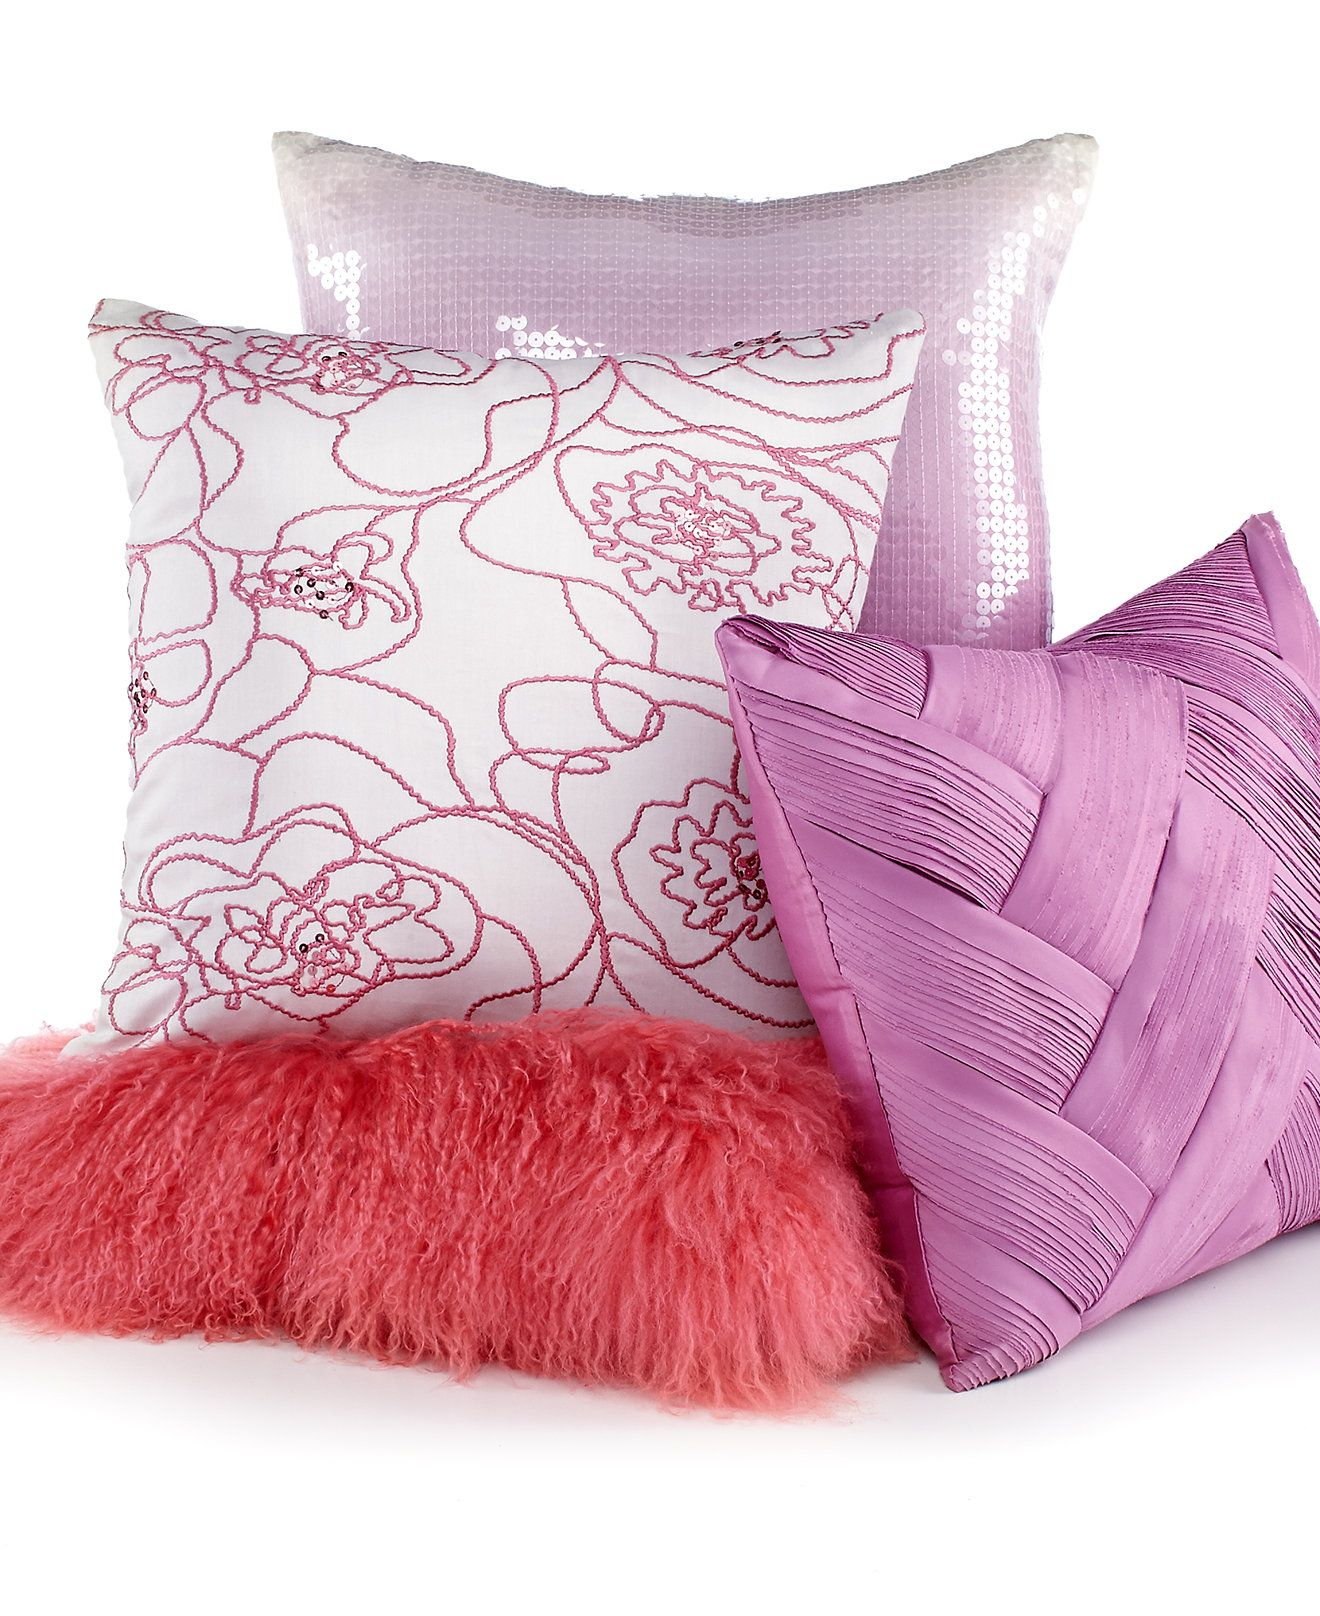 Macy's Decorative Pillows Extraordinary Inc International Concepts Ava Decorative Pillow Collection Inspiration